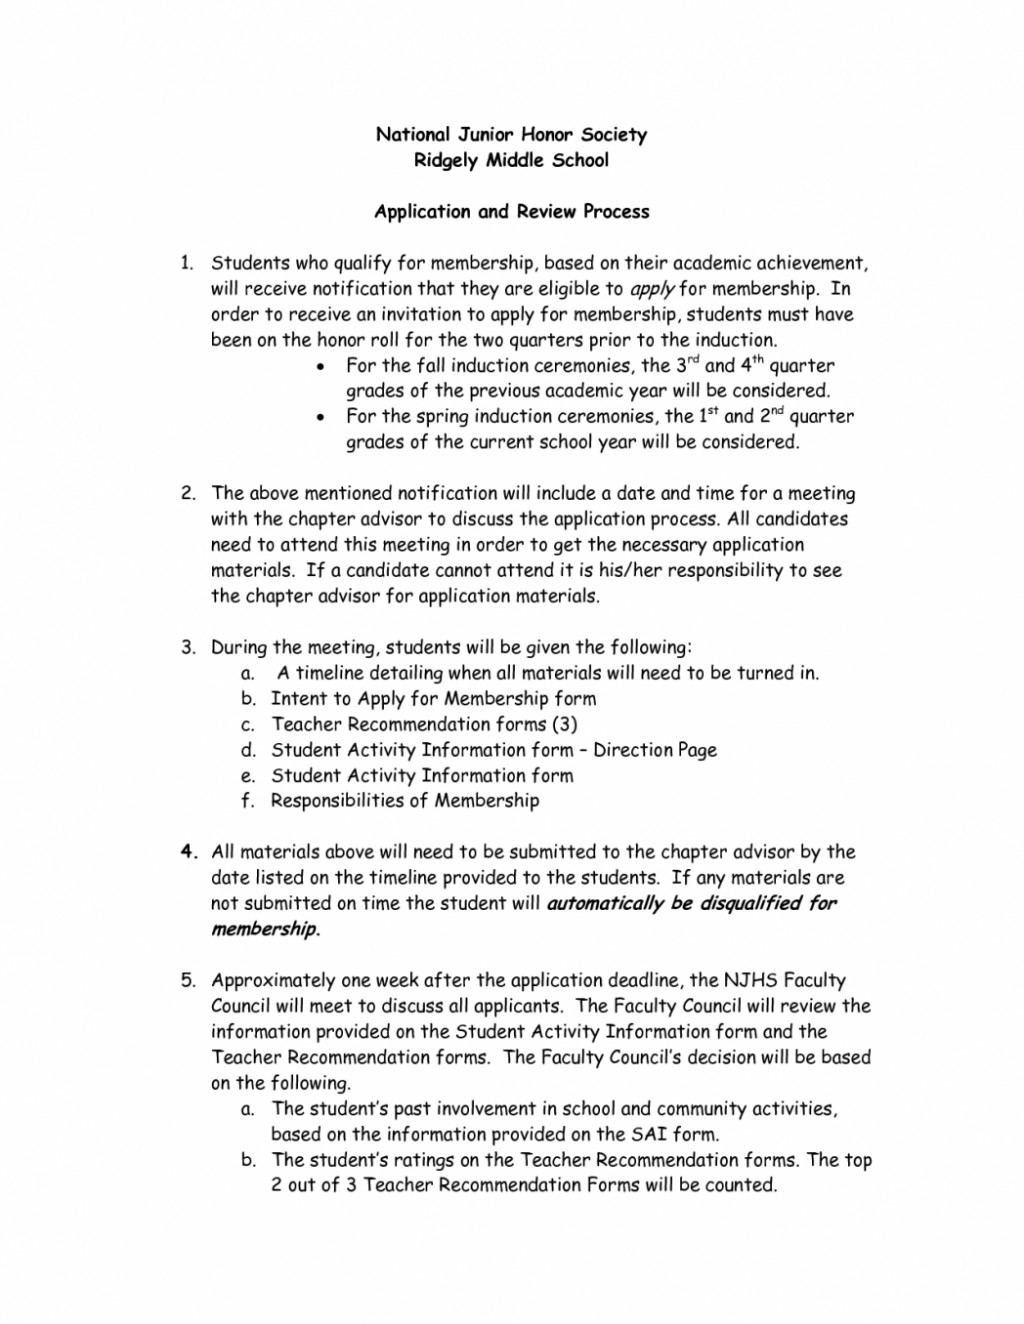 014 Essay Example National Honors Society Examples Of Honor Junior Topics Unique Conclusion Samples Character Large